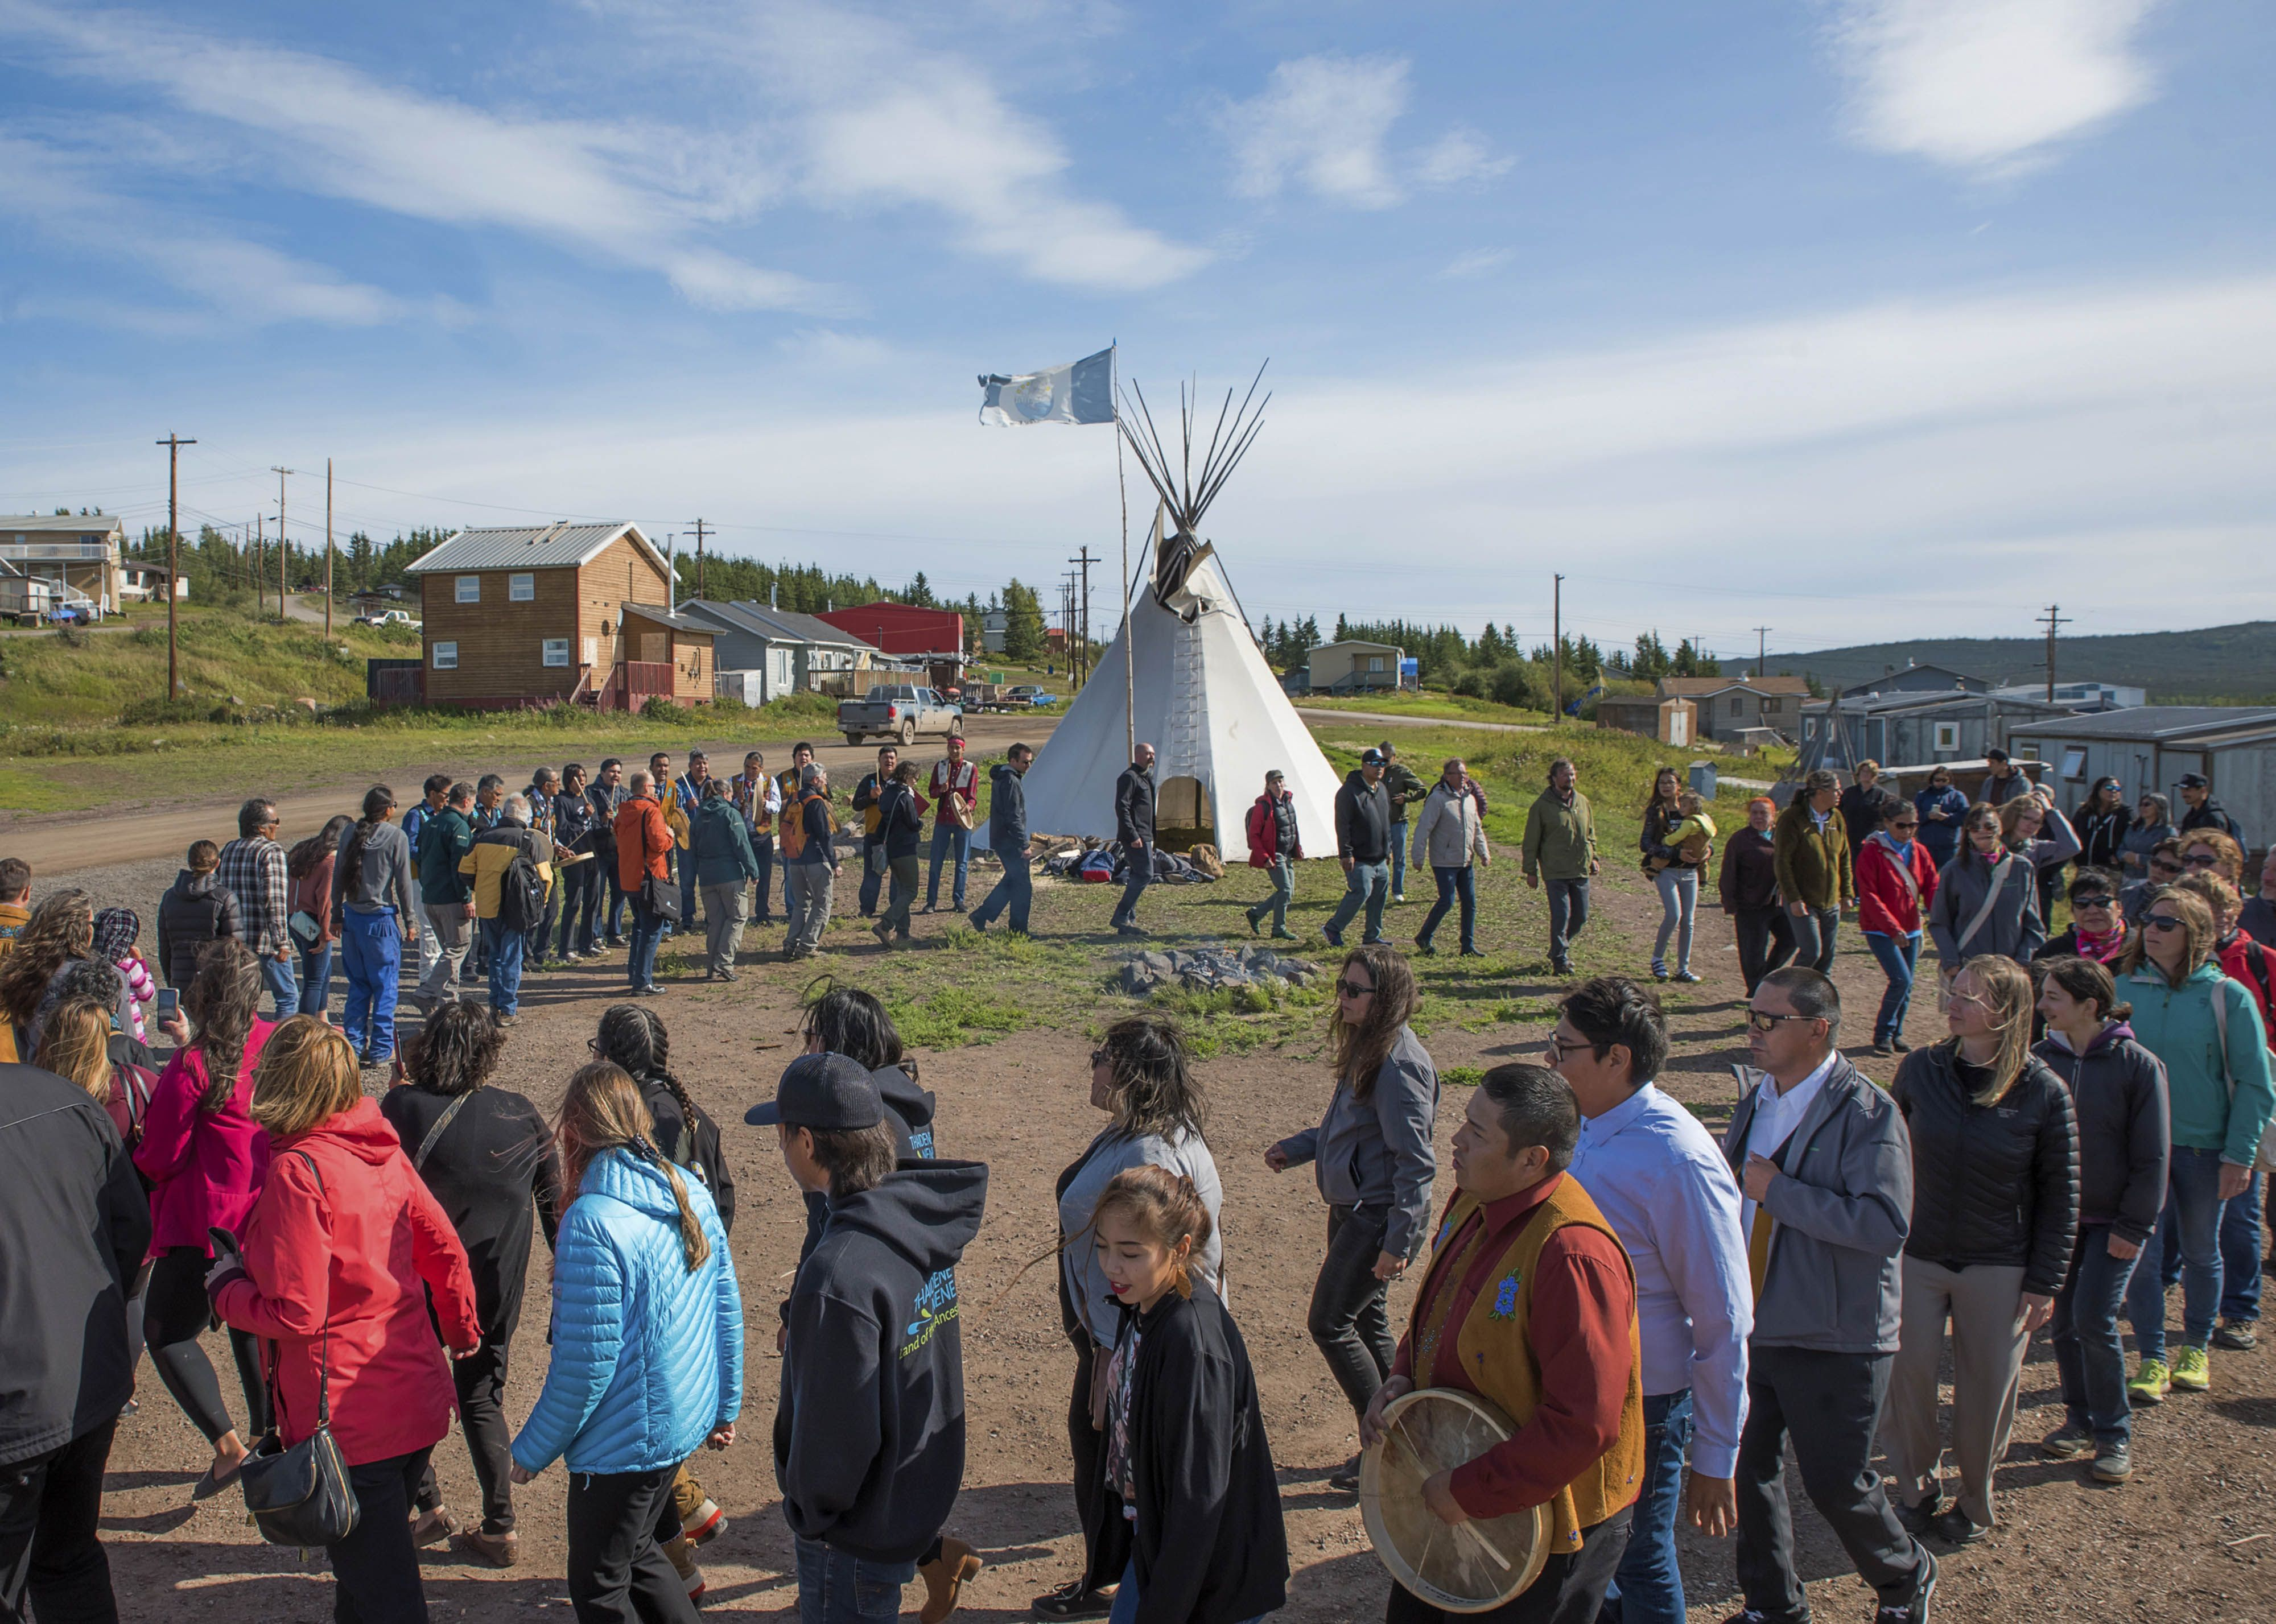 a group of people walking in a circle around a teepee structure